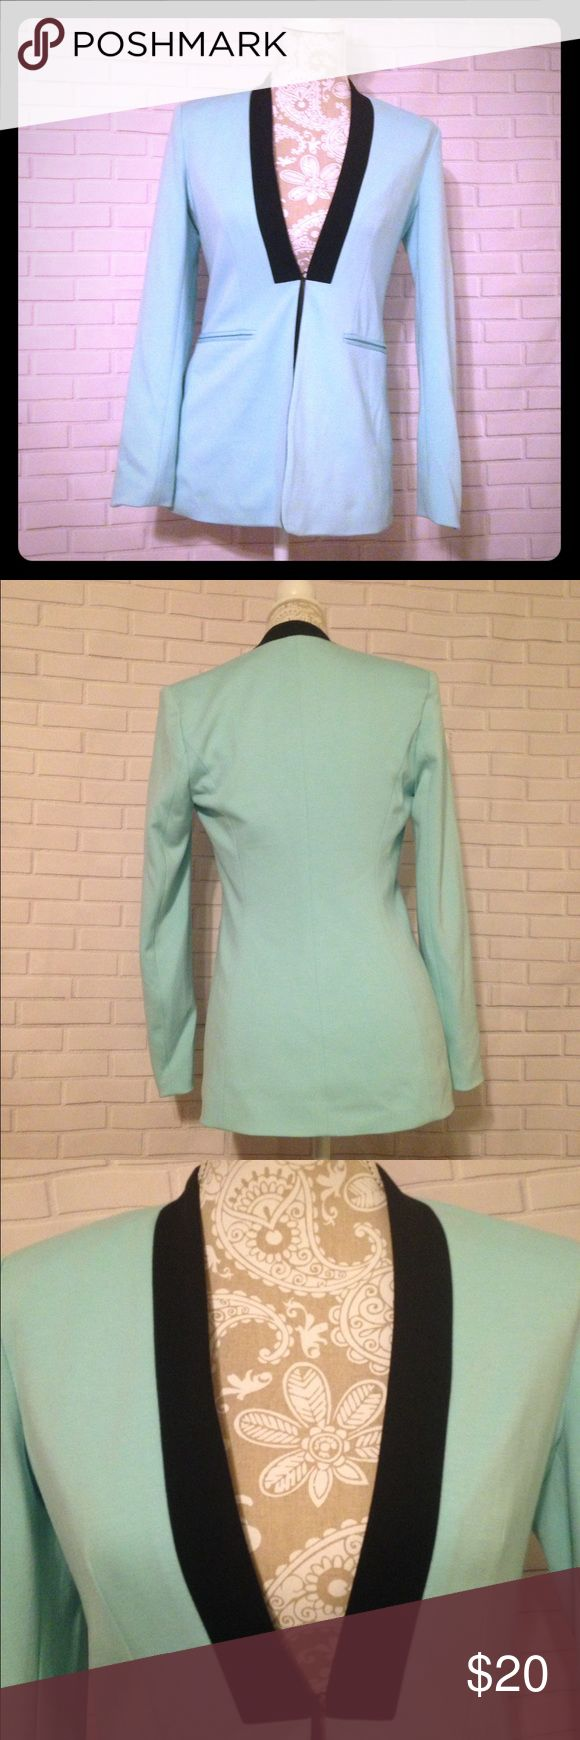 Boston Proper Mint Green and Black Blazer. Size 2 Excellent used condition. Boston Proper. Color is mint green. Faux pockets. Shoulder pads. Only 1 hook for closure on the front. Please refer back to the pictures for more details. Thank you for visiting my closet! Boston Proper Jackets & Coats Blazers